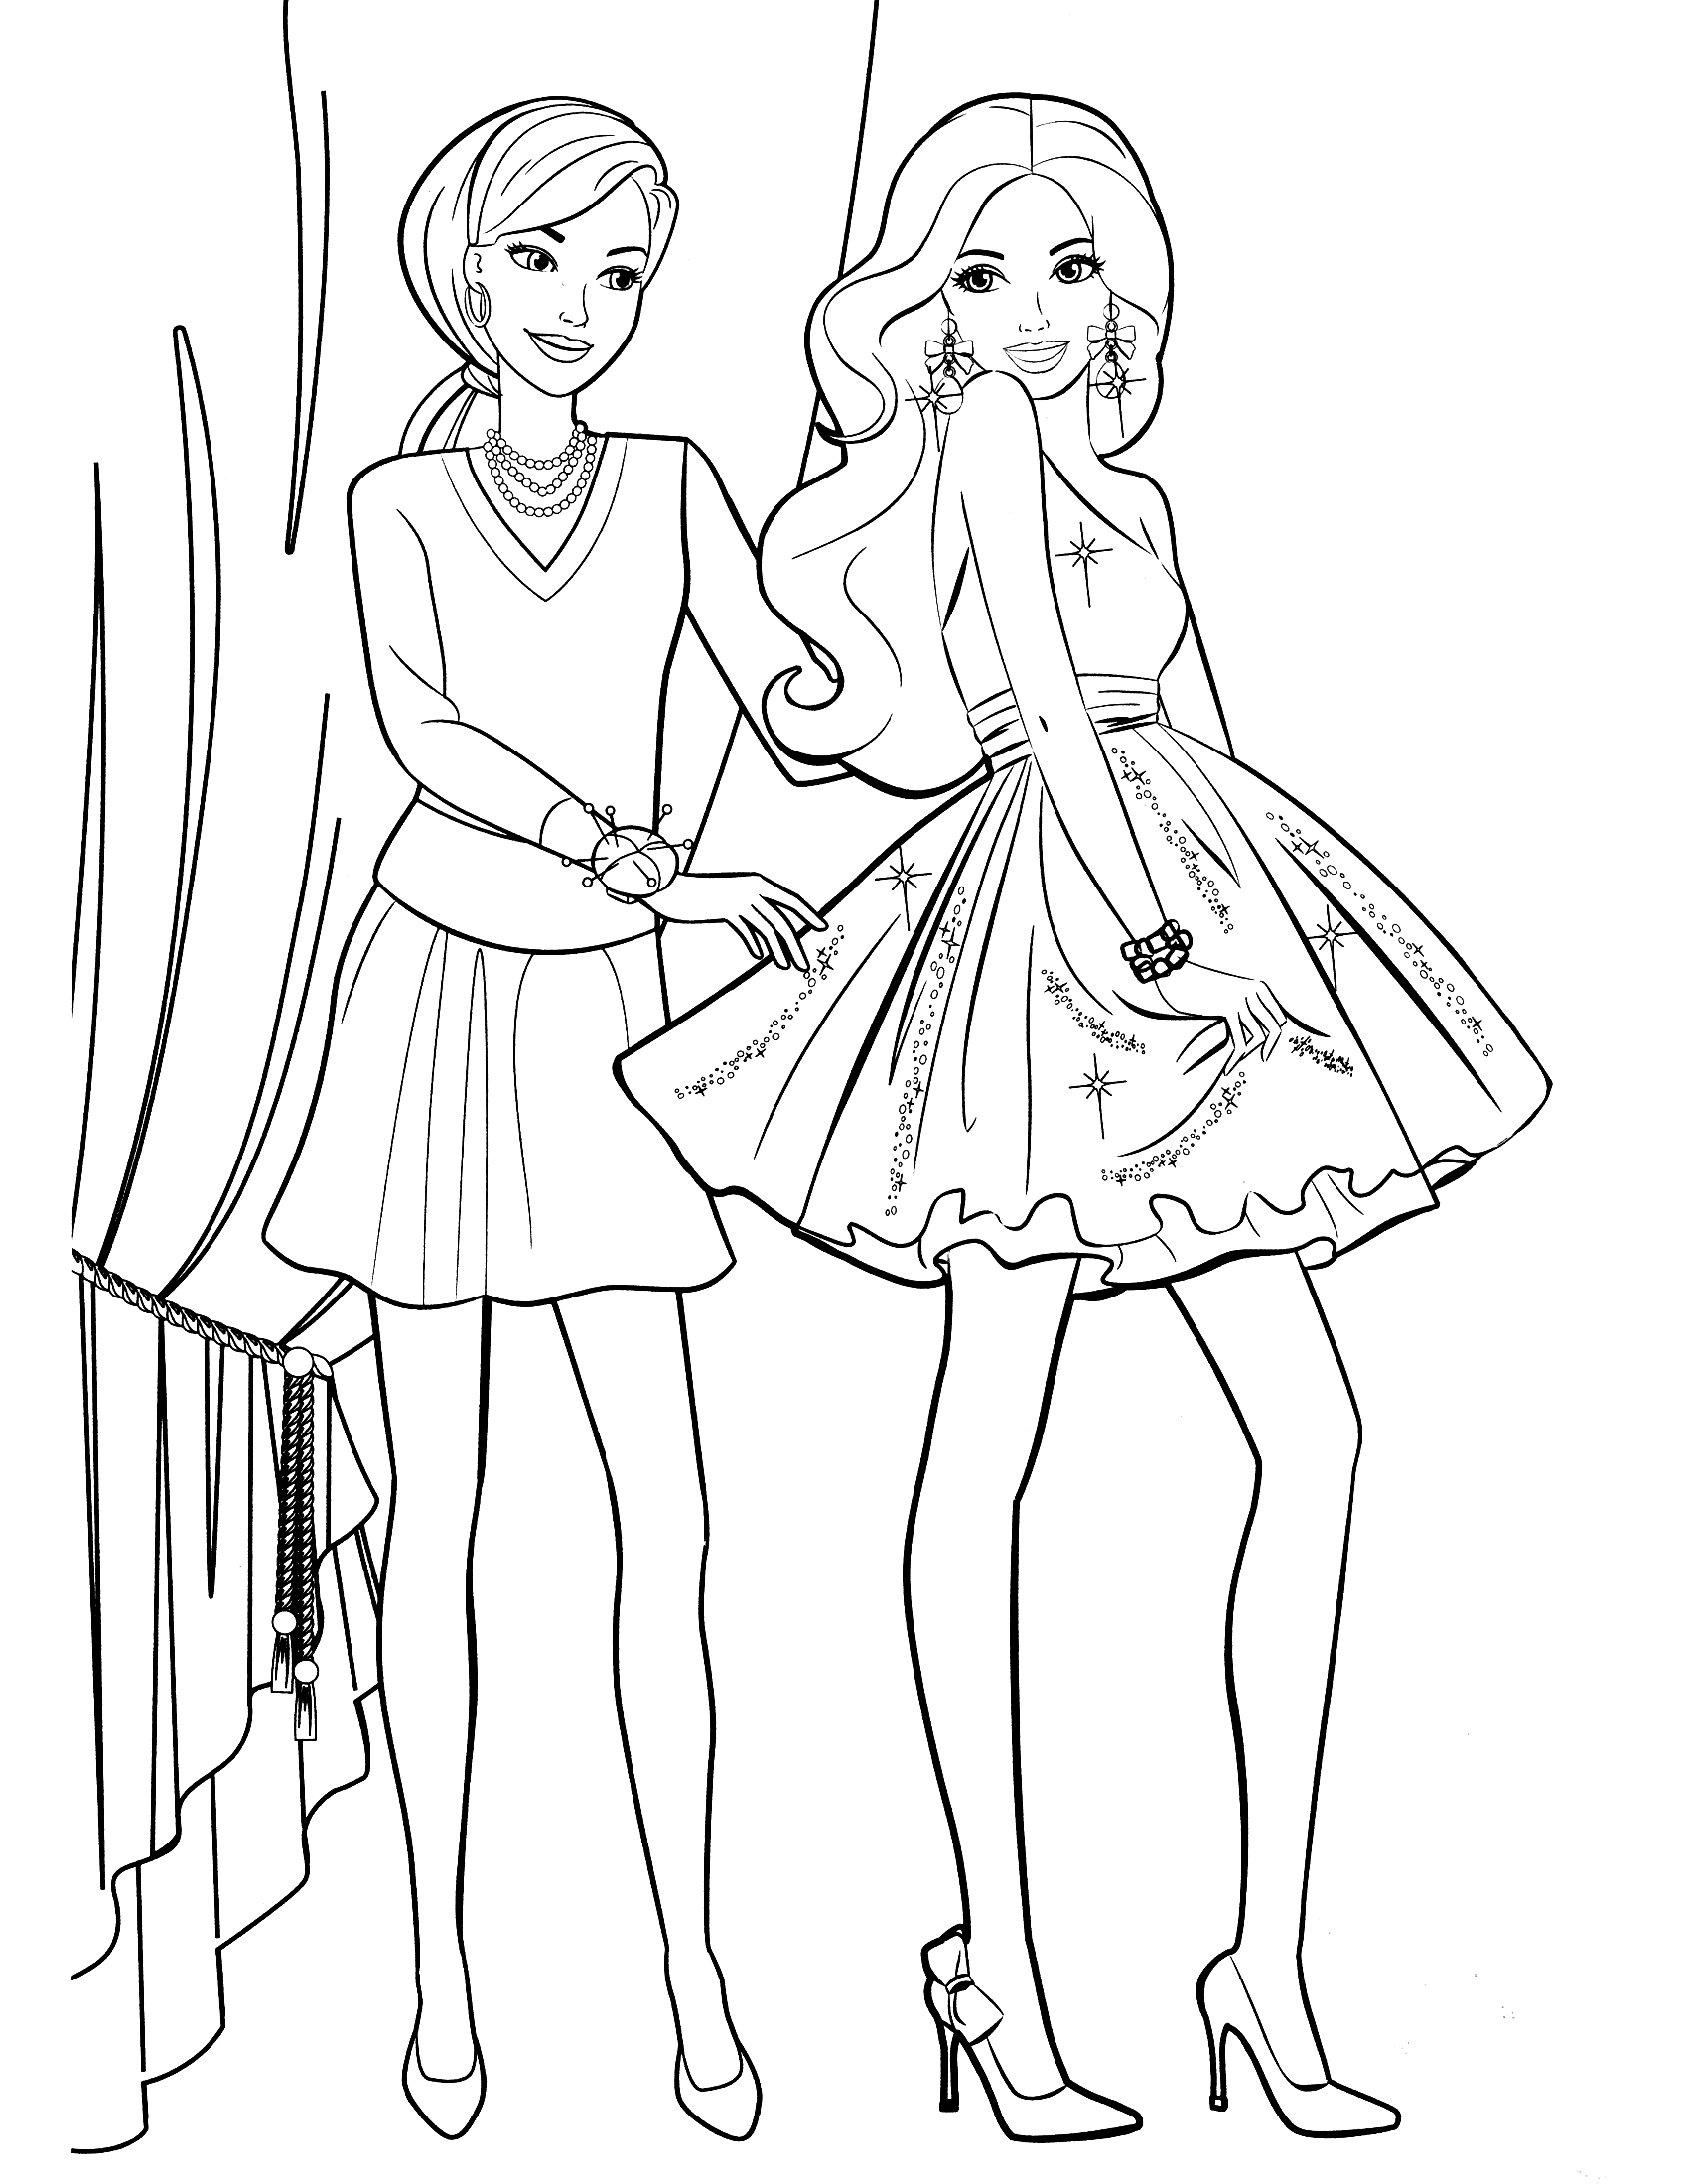 Coloring Pages Games 1700x2200 Luxurious And Splendid Barbie Printing Wonderful Design